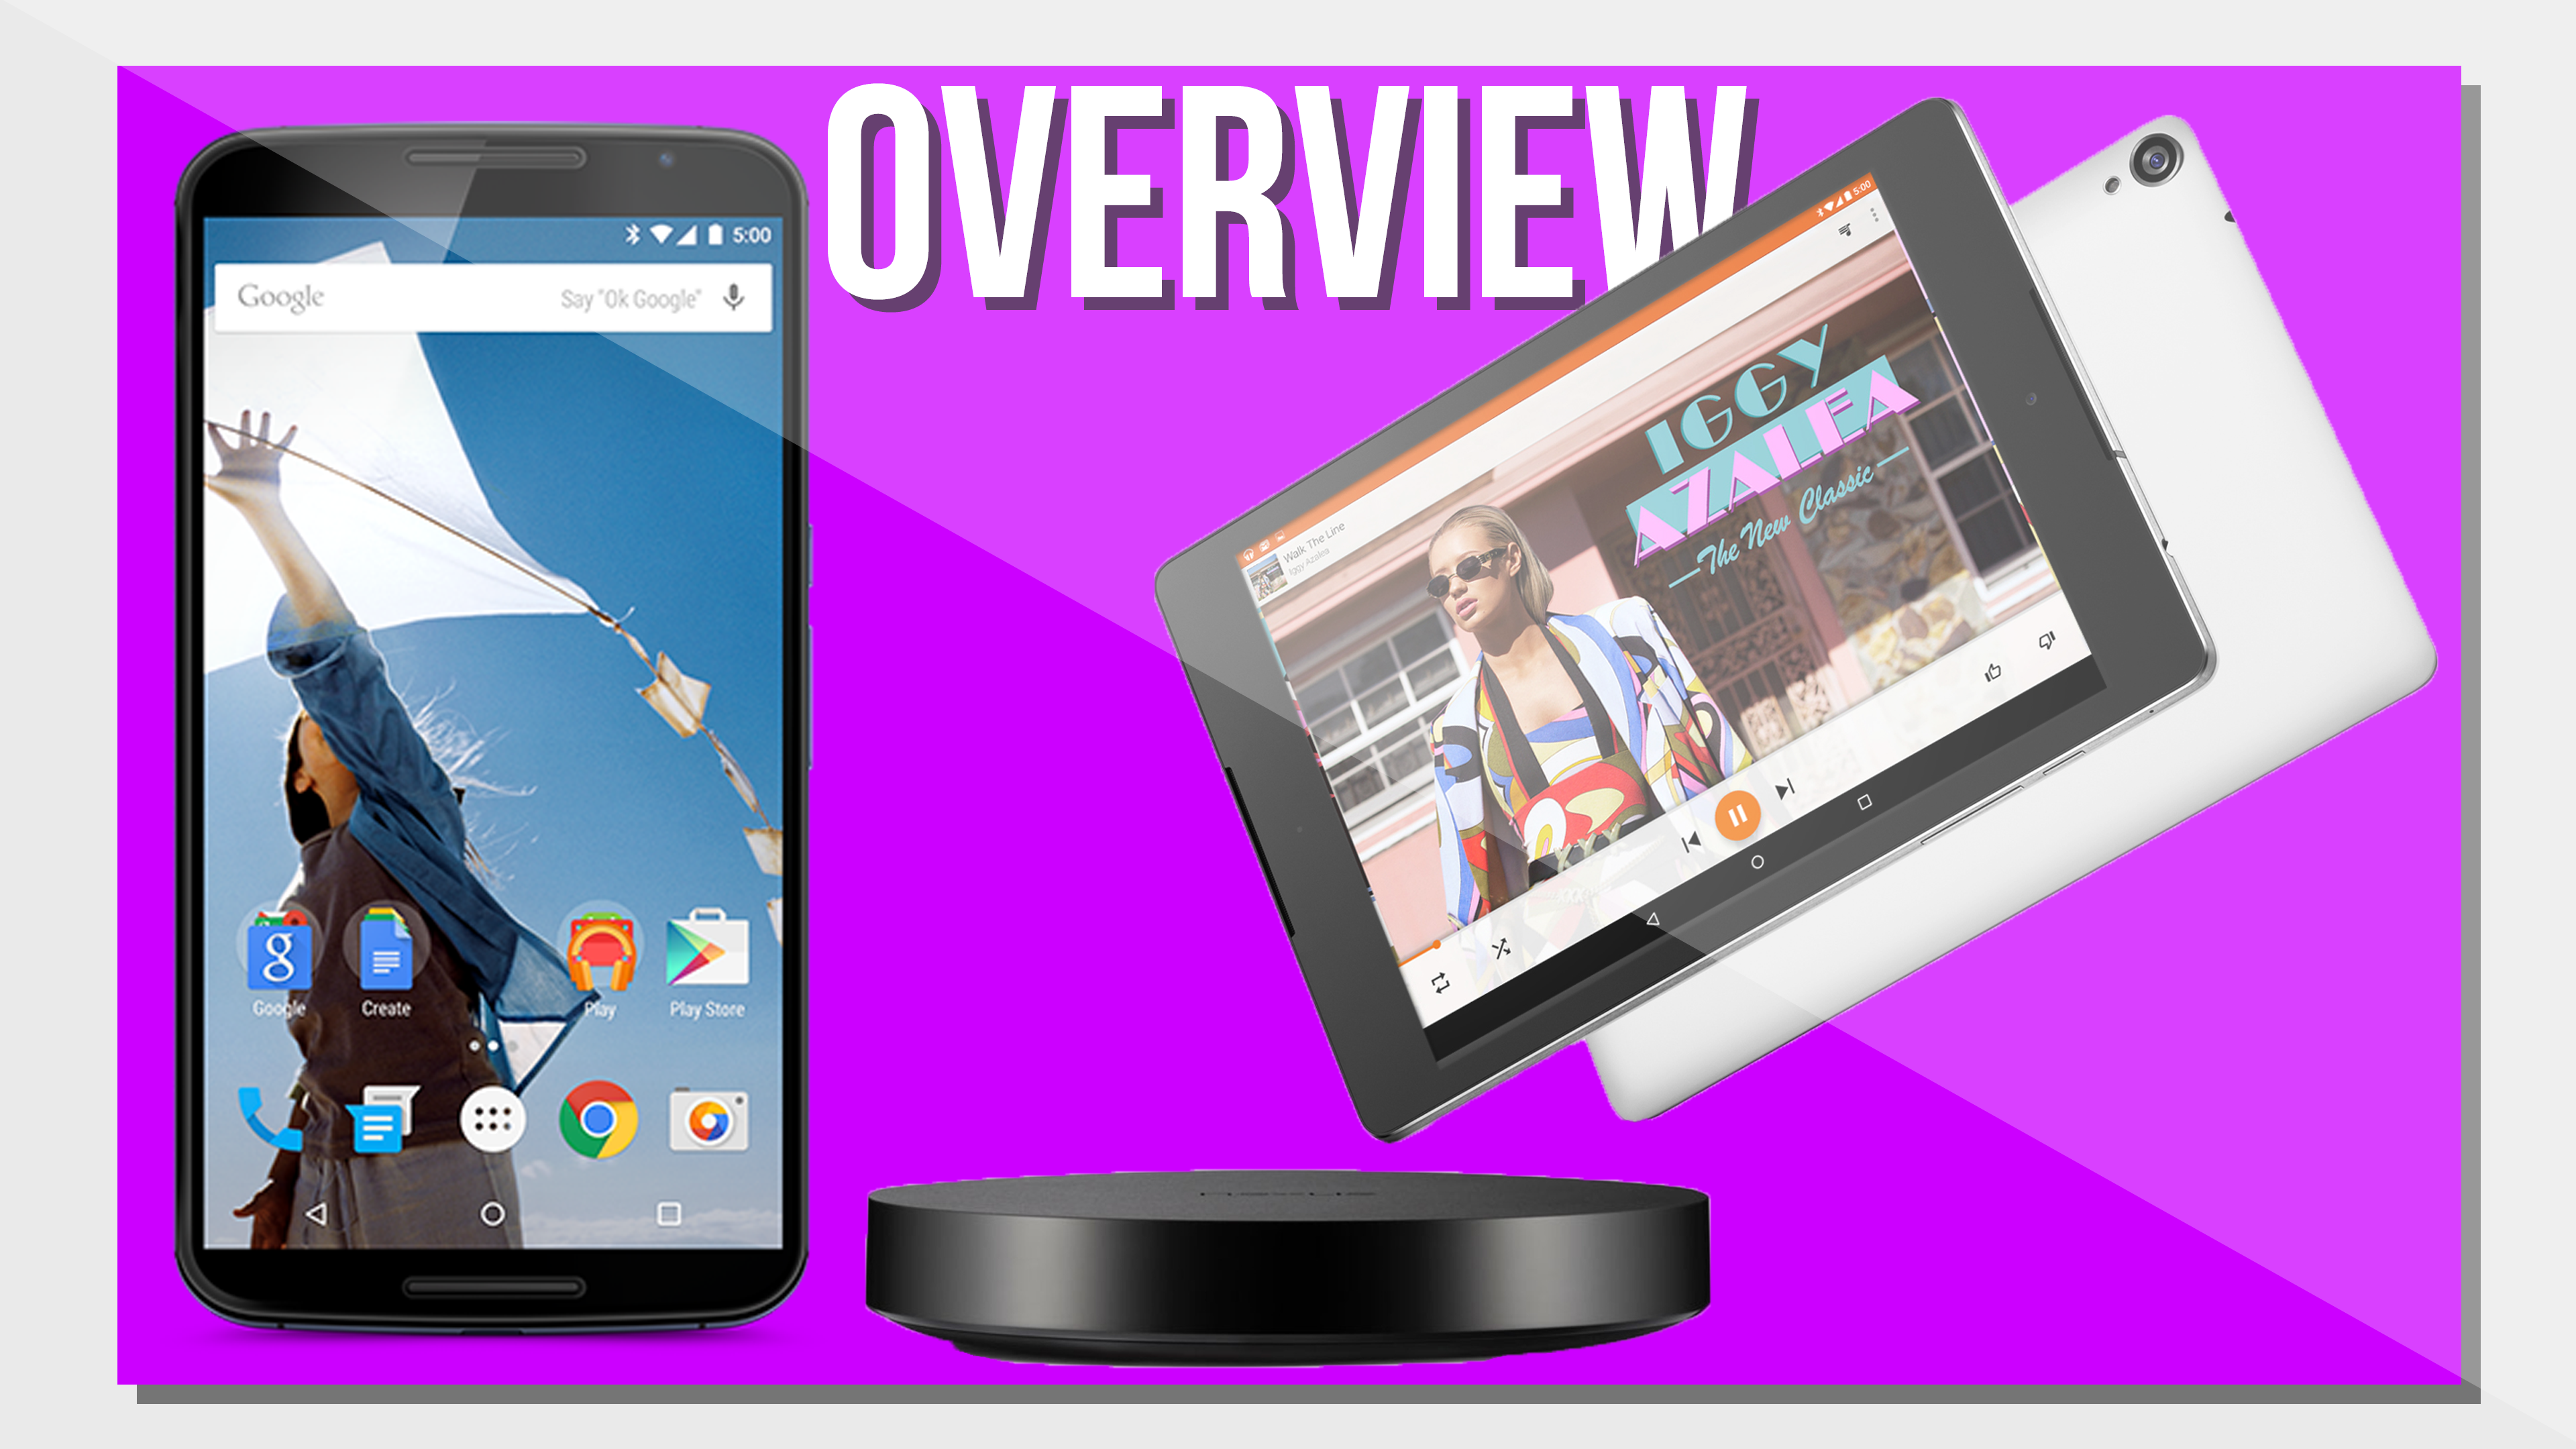 Nexus 6, Nexus 9, Nexus Player – Overview